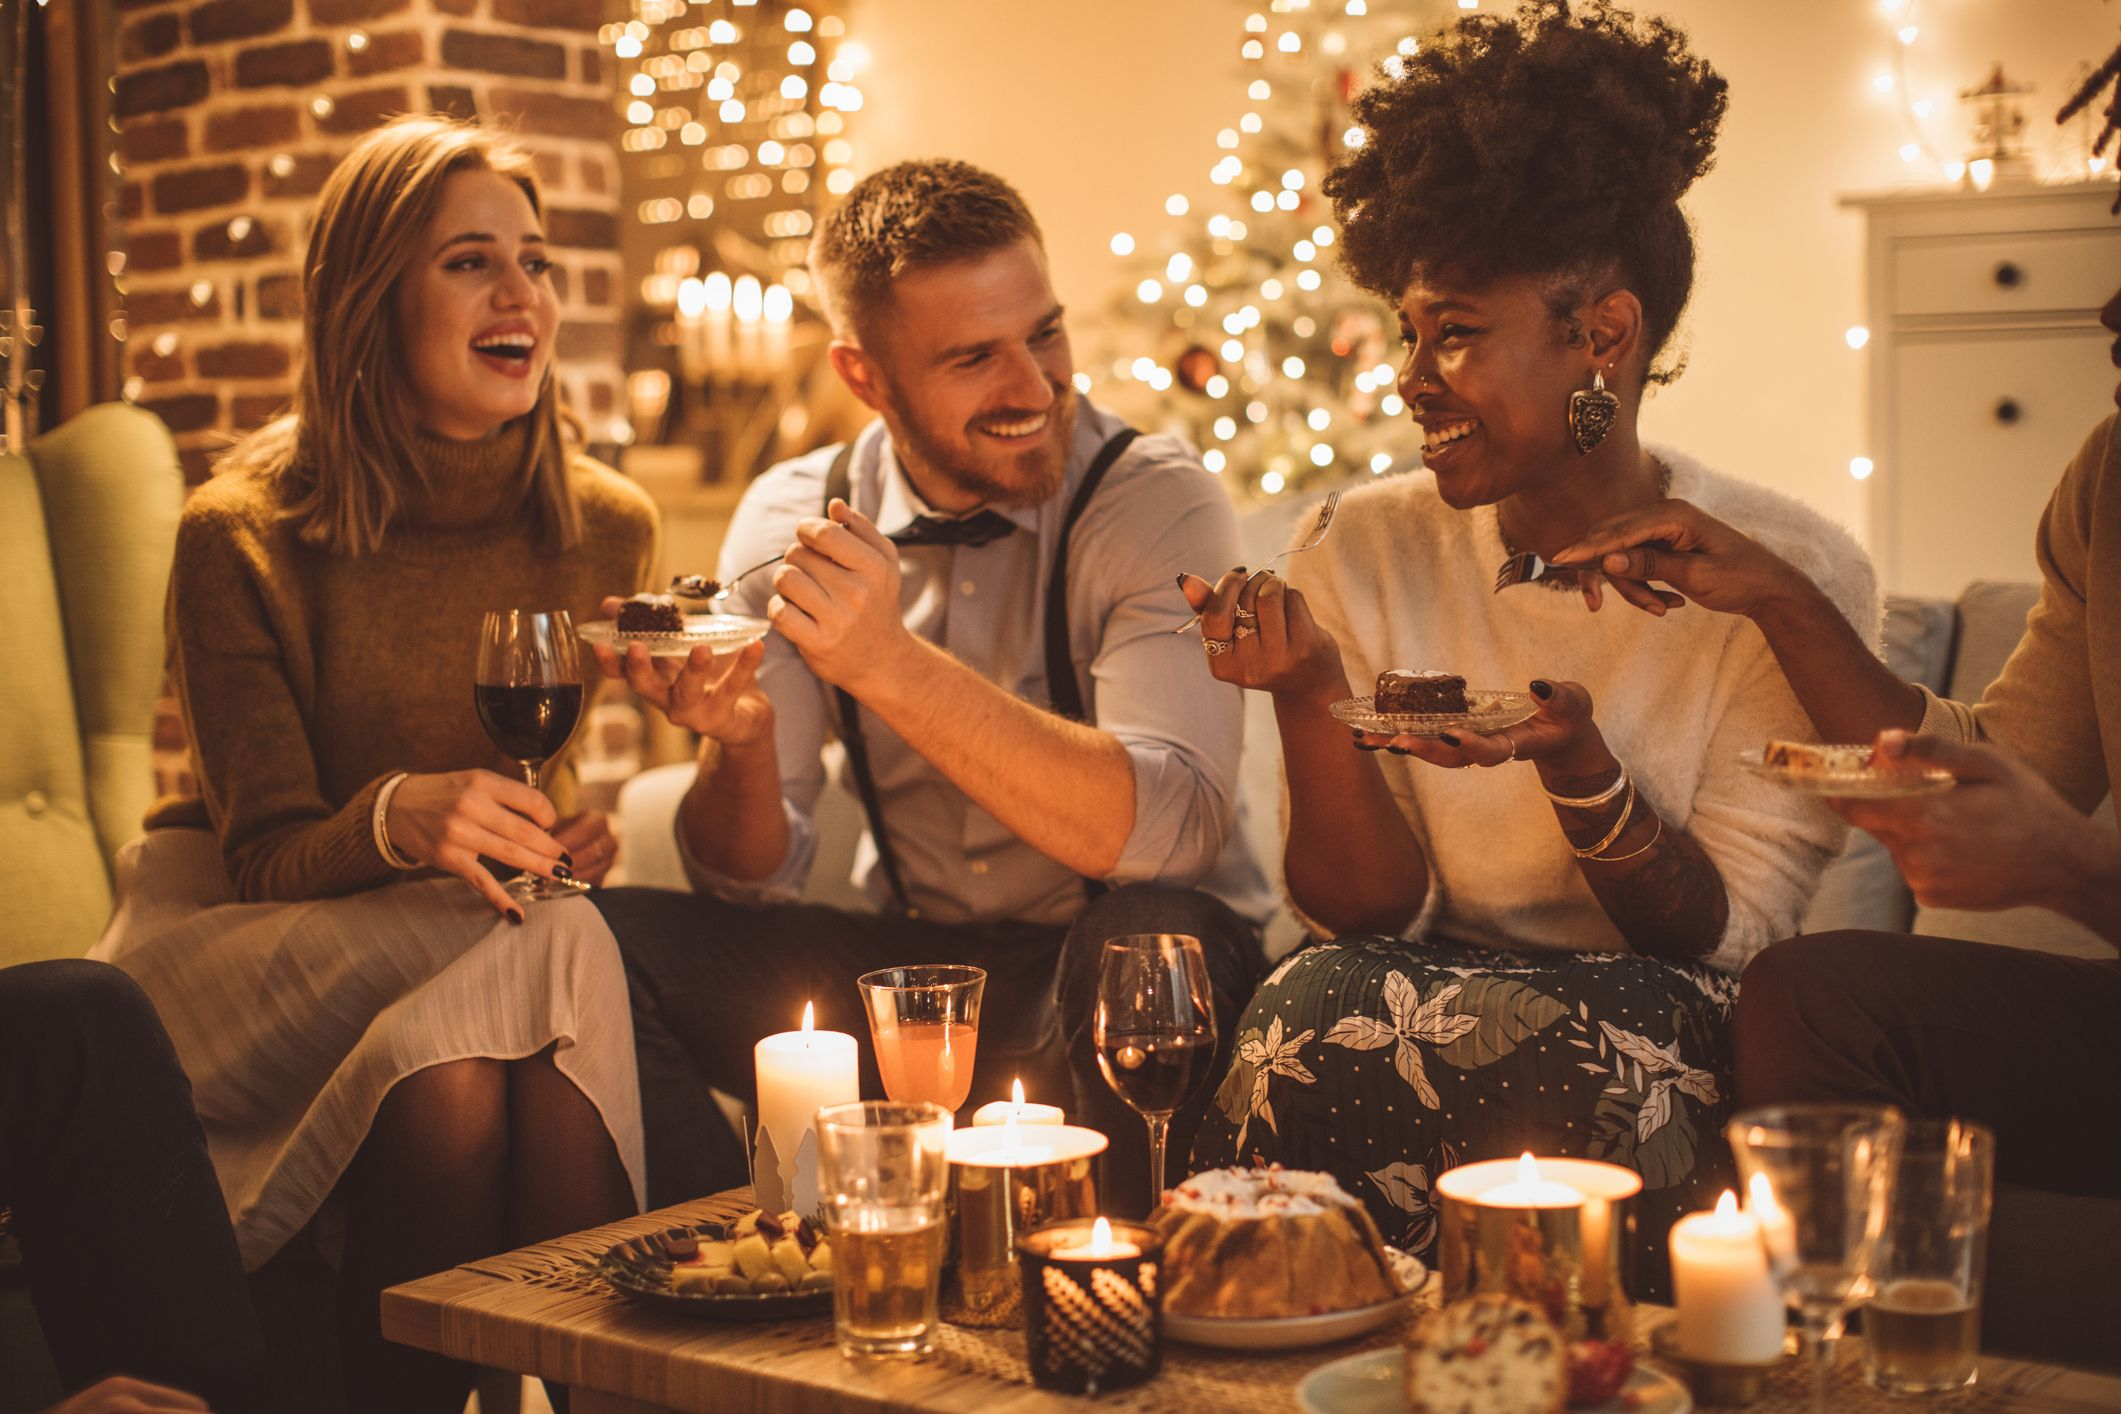 15 Best New Year's Eve Games to Help You Ring in 2020 With Lots of Laughter